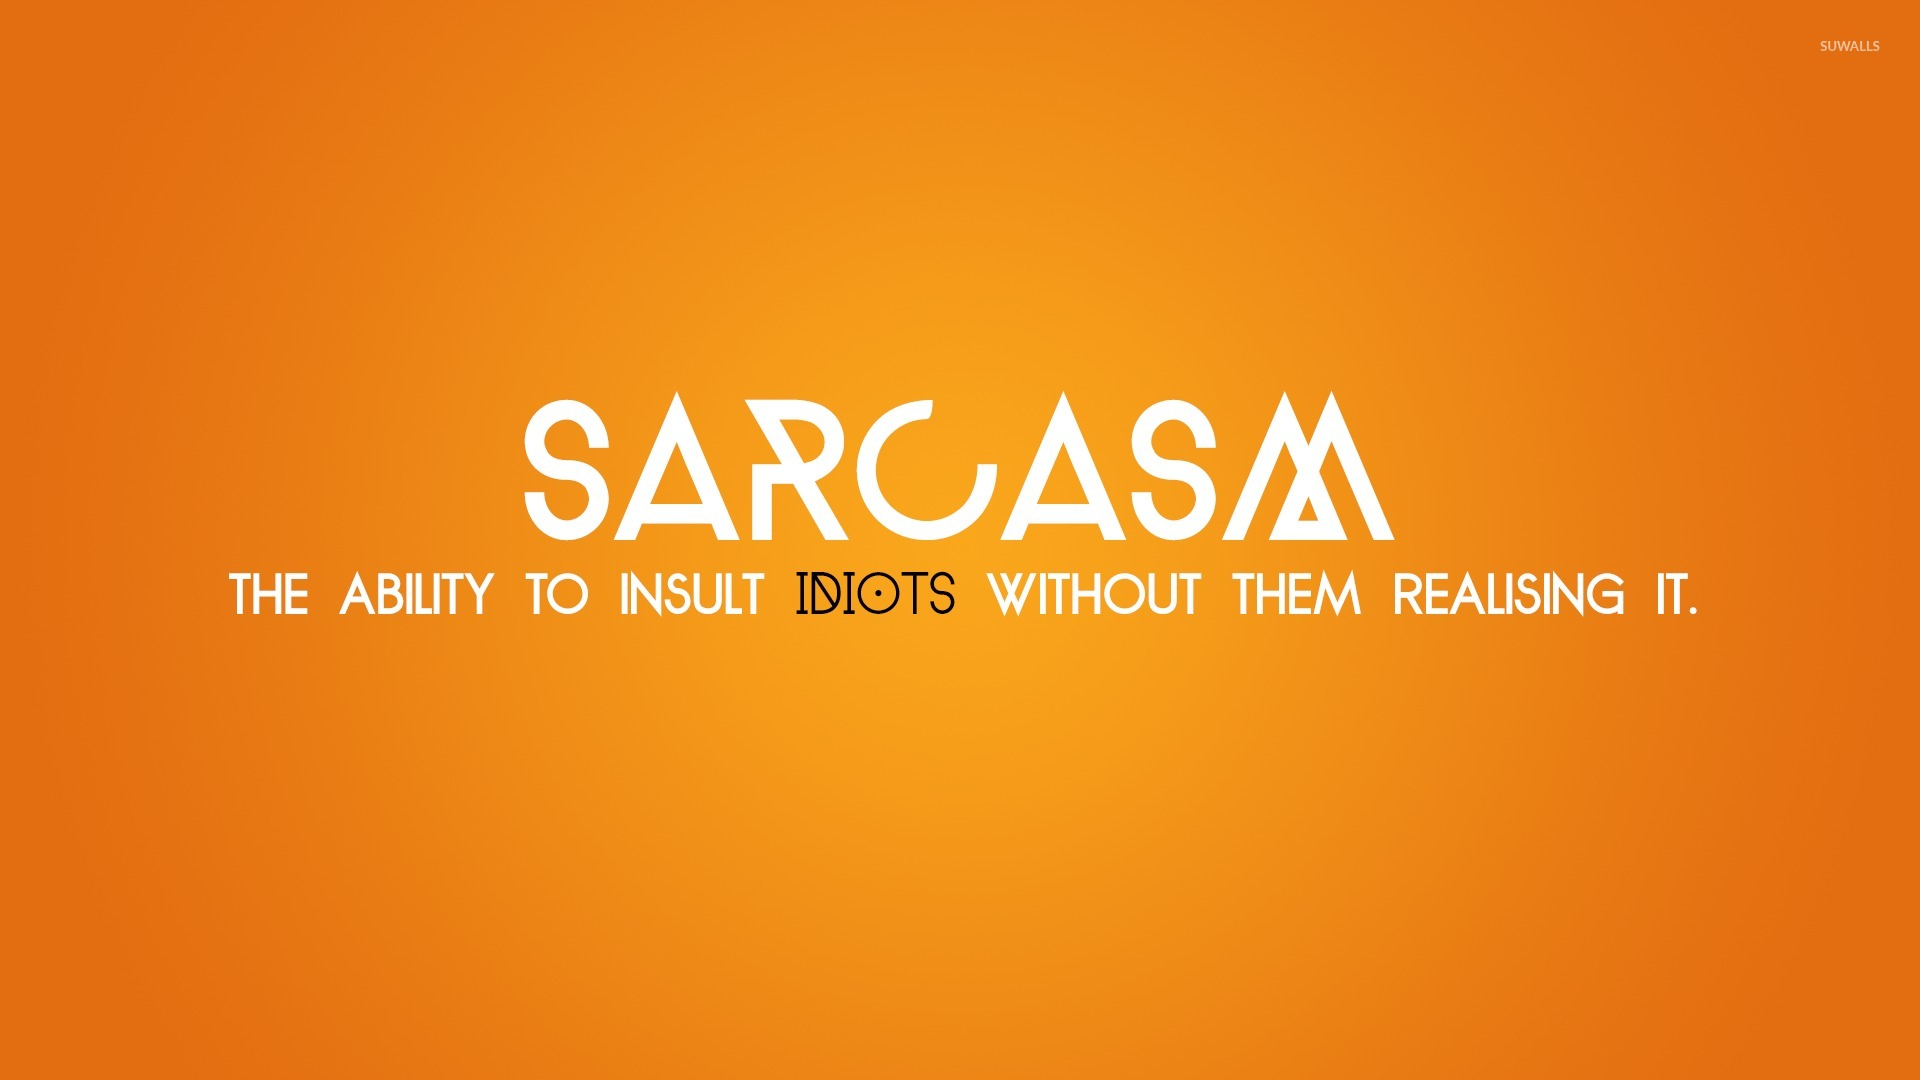 Sarcasm wallpaper   Typography wallpapers   23540 1920x1080